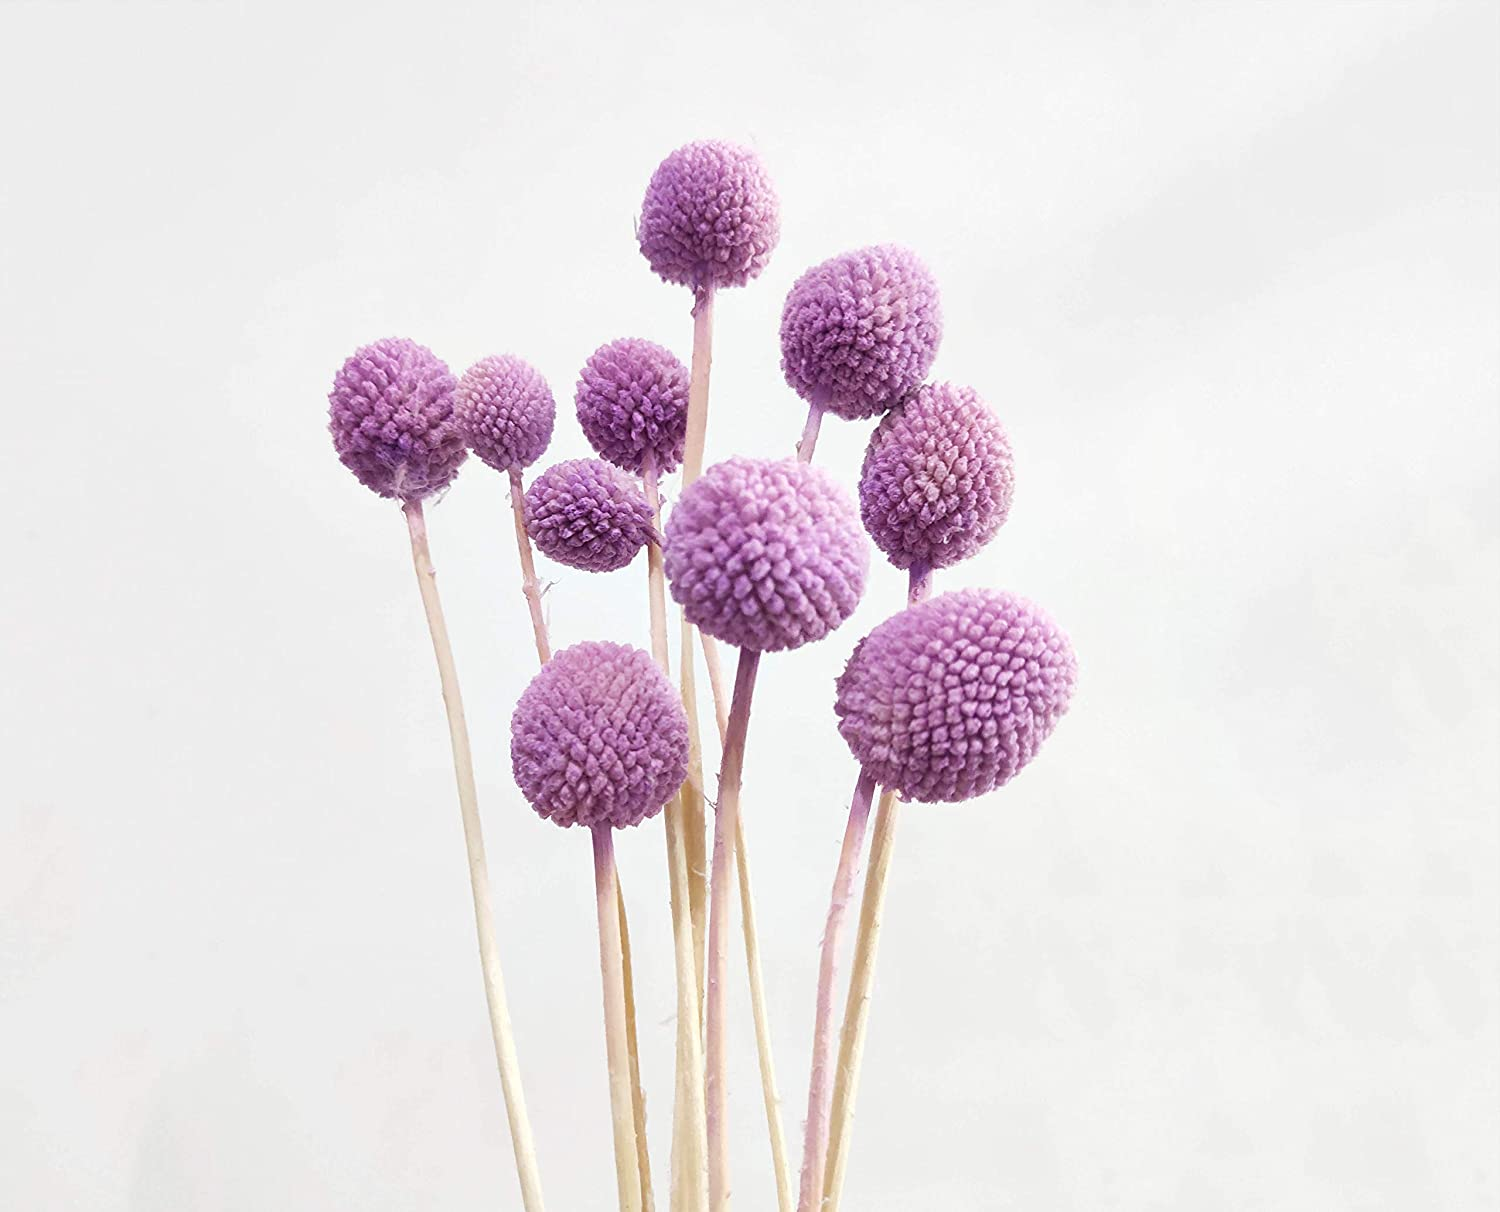 20 Stems Dry Craspedia Natural Dried Pink Purple Billy Balls 20 Inch Tall Dry Billy Button Dried Floral Arrangement Floral Decor Home Decor Home Kitchen Home Decor